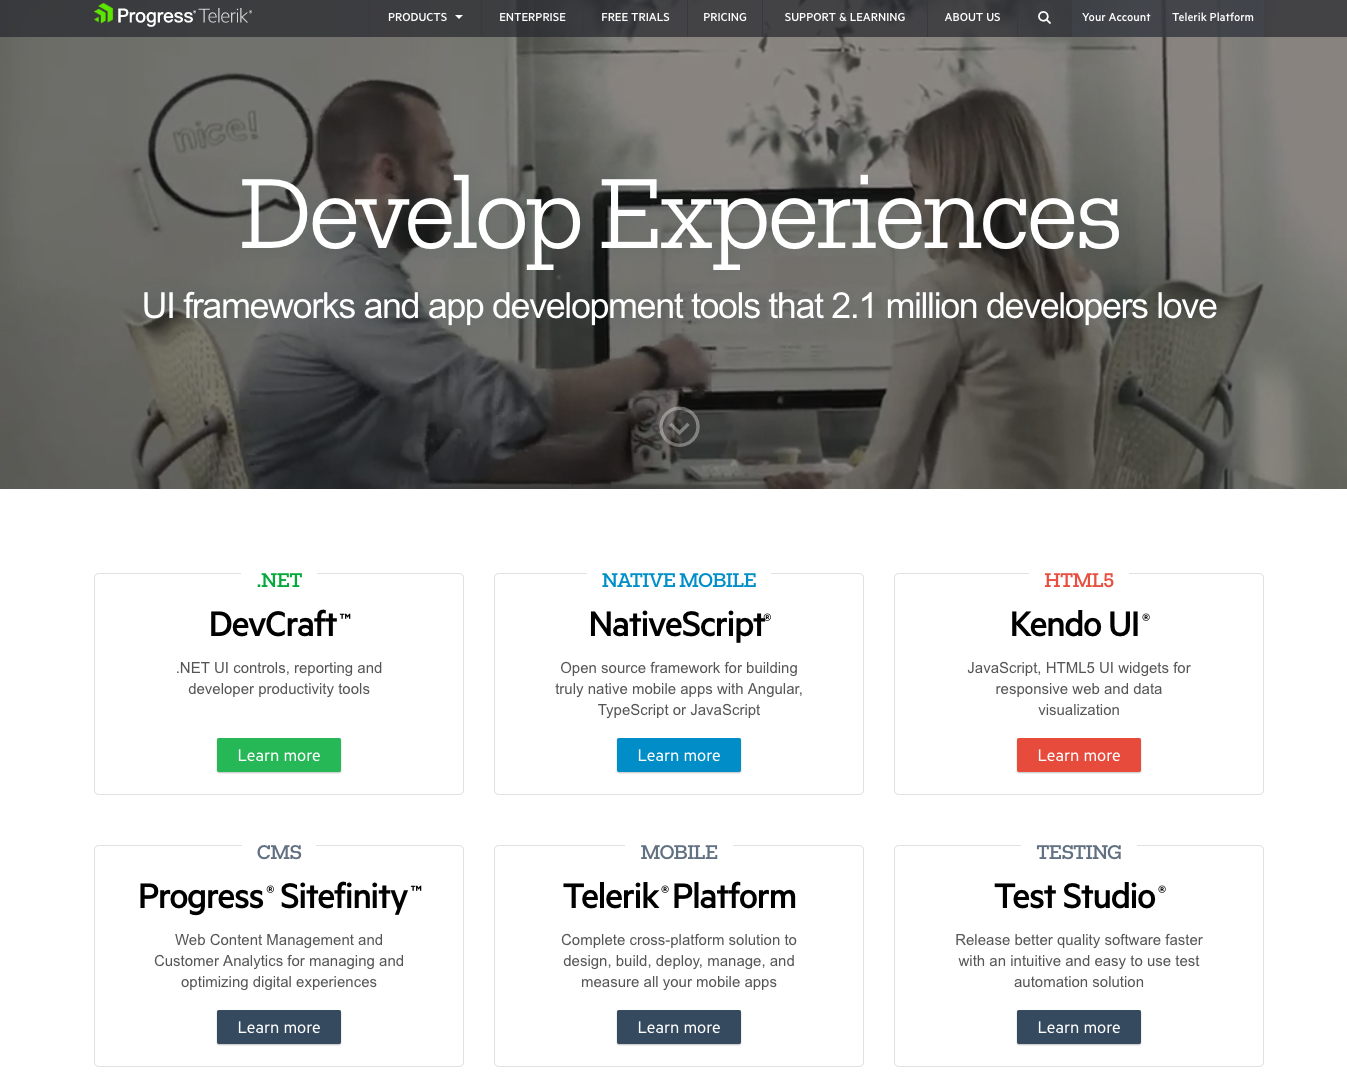 telerik-homepage-update.png  20 of the Best Website Homepage Design Examples telerik homepage update